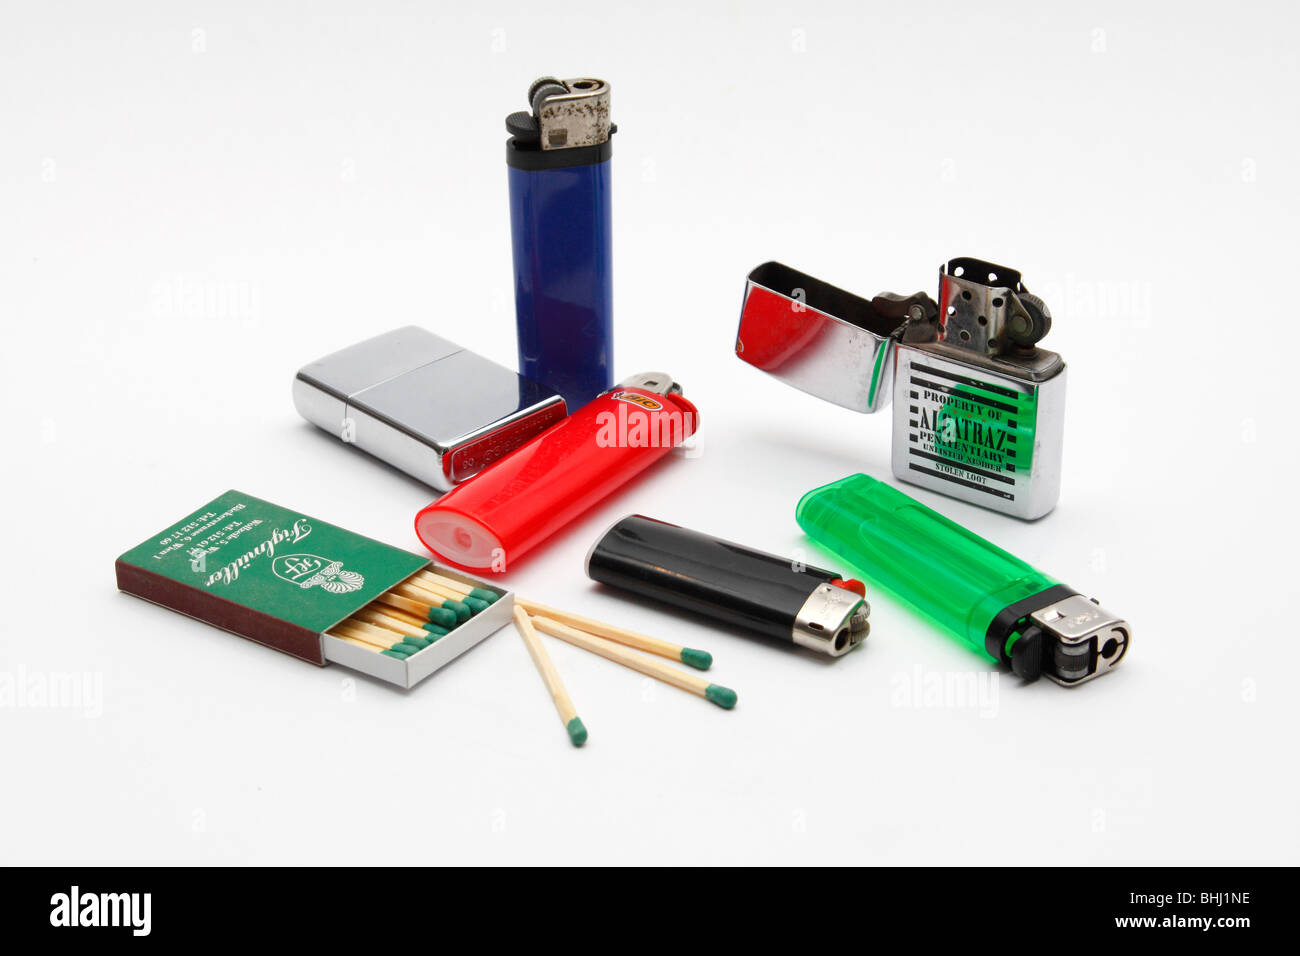 Lighters and matches on a white background. - Stock Image